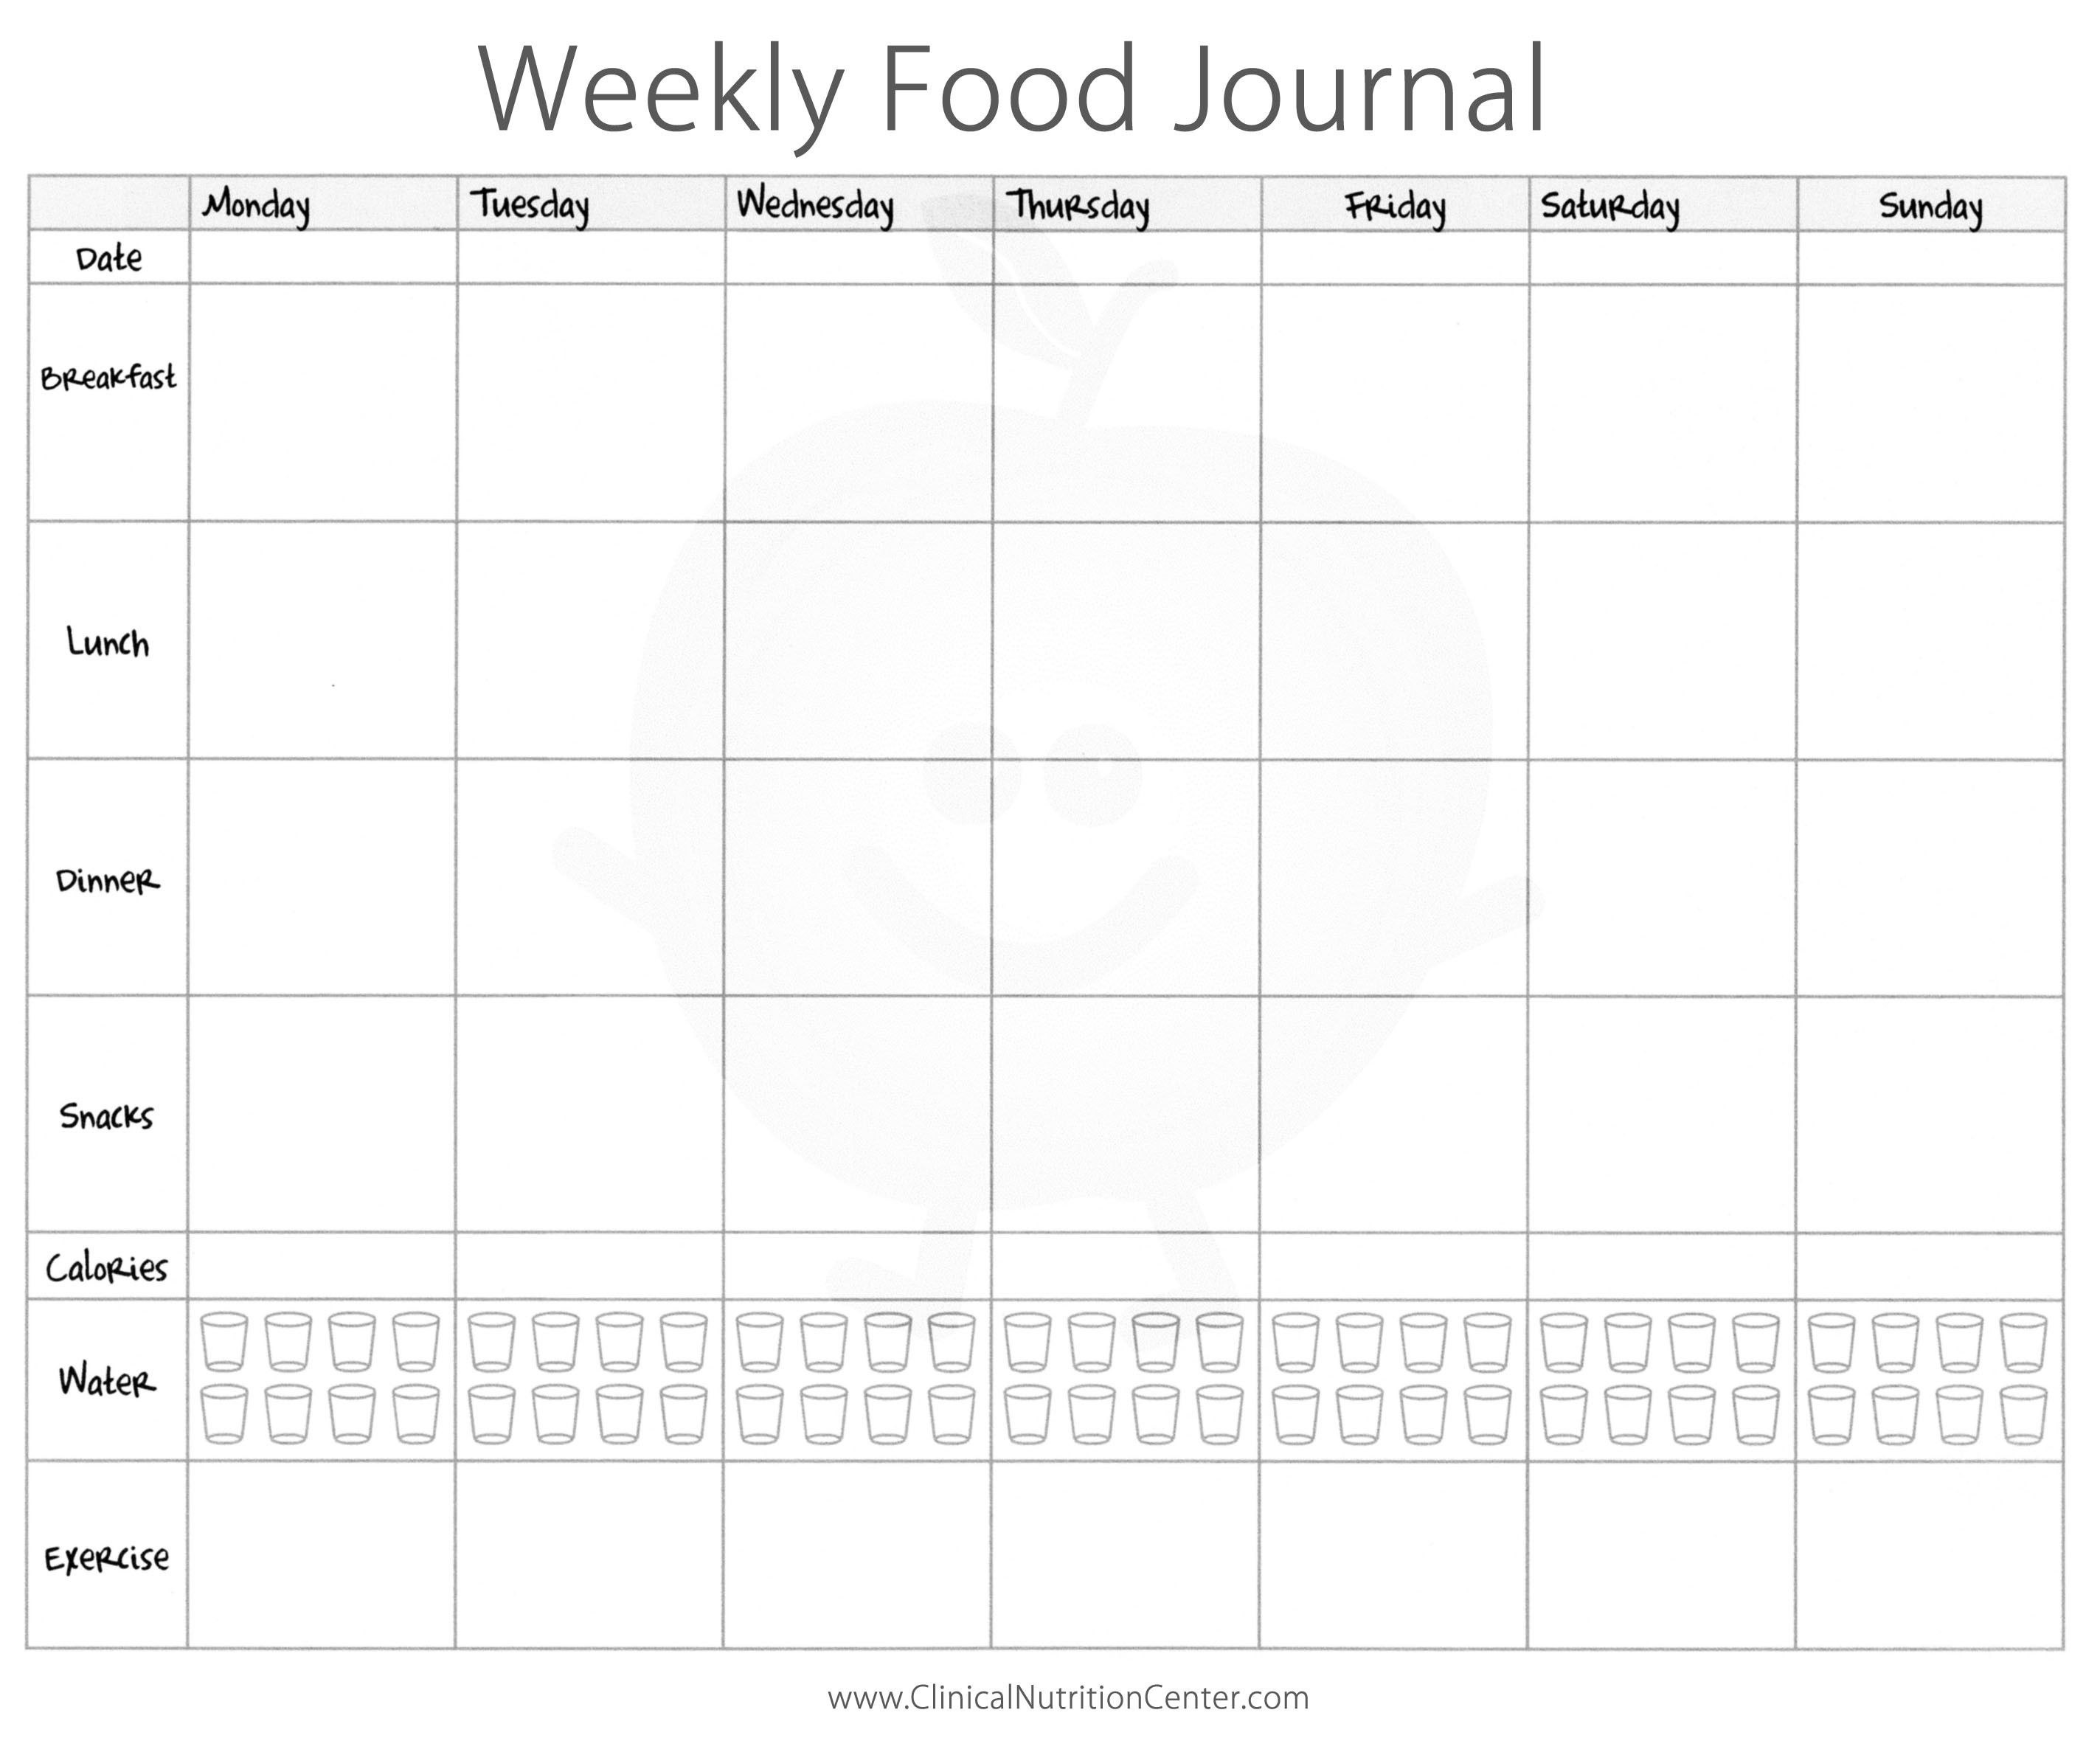 Weekly Food Journal Printable Paul's House Health Nut